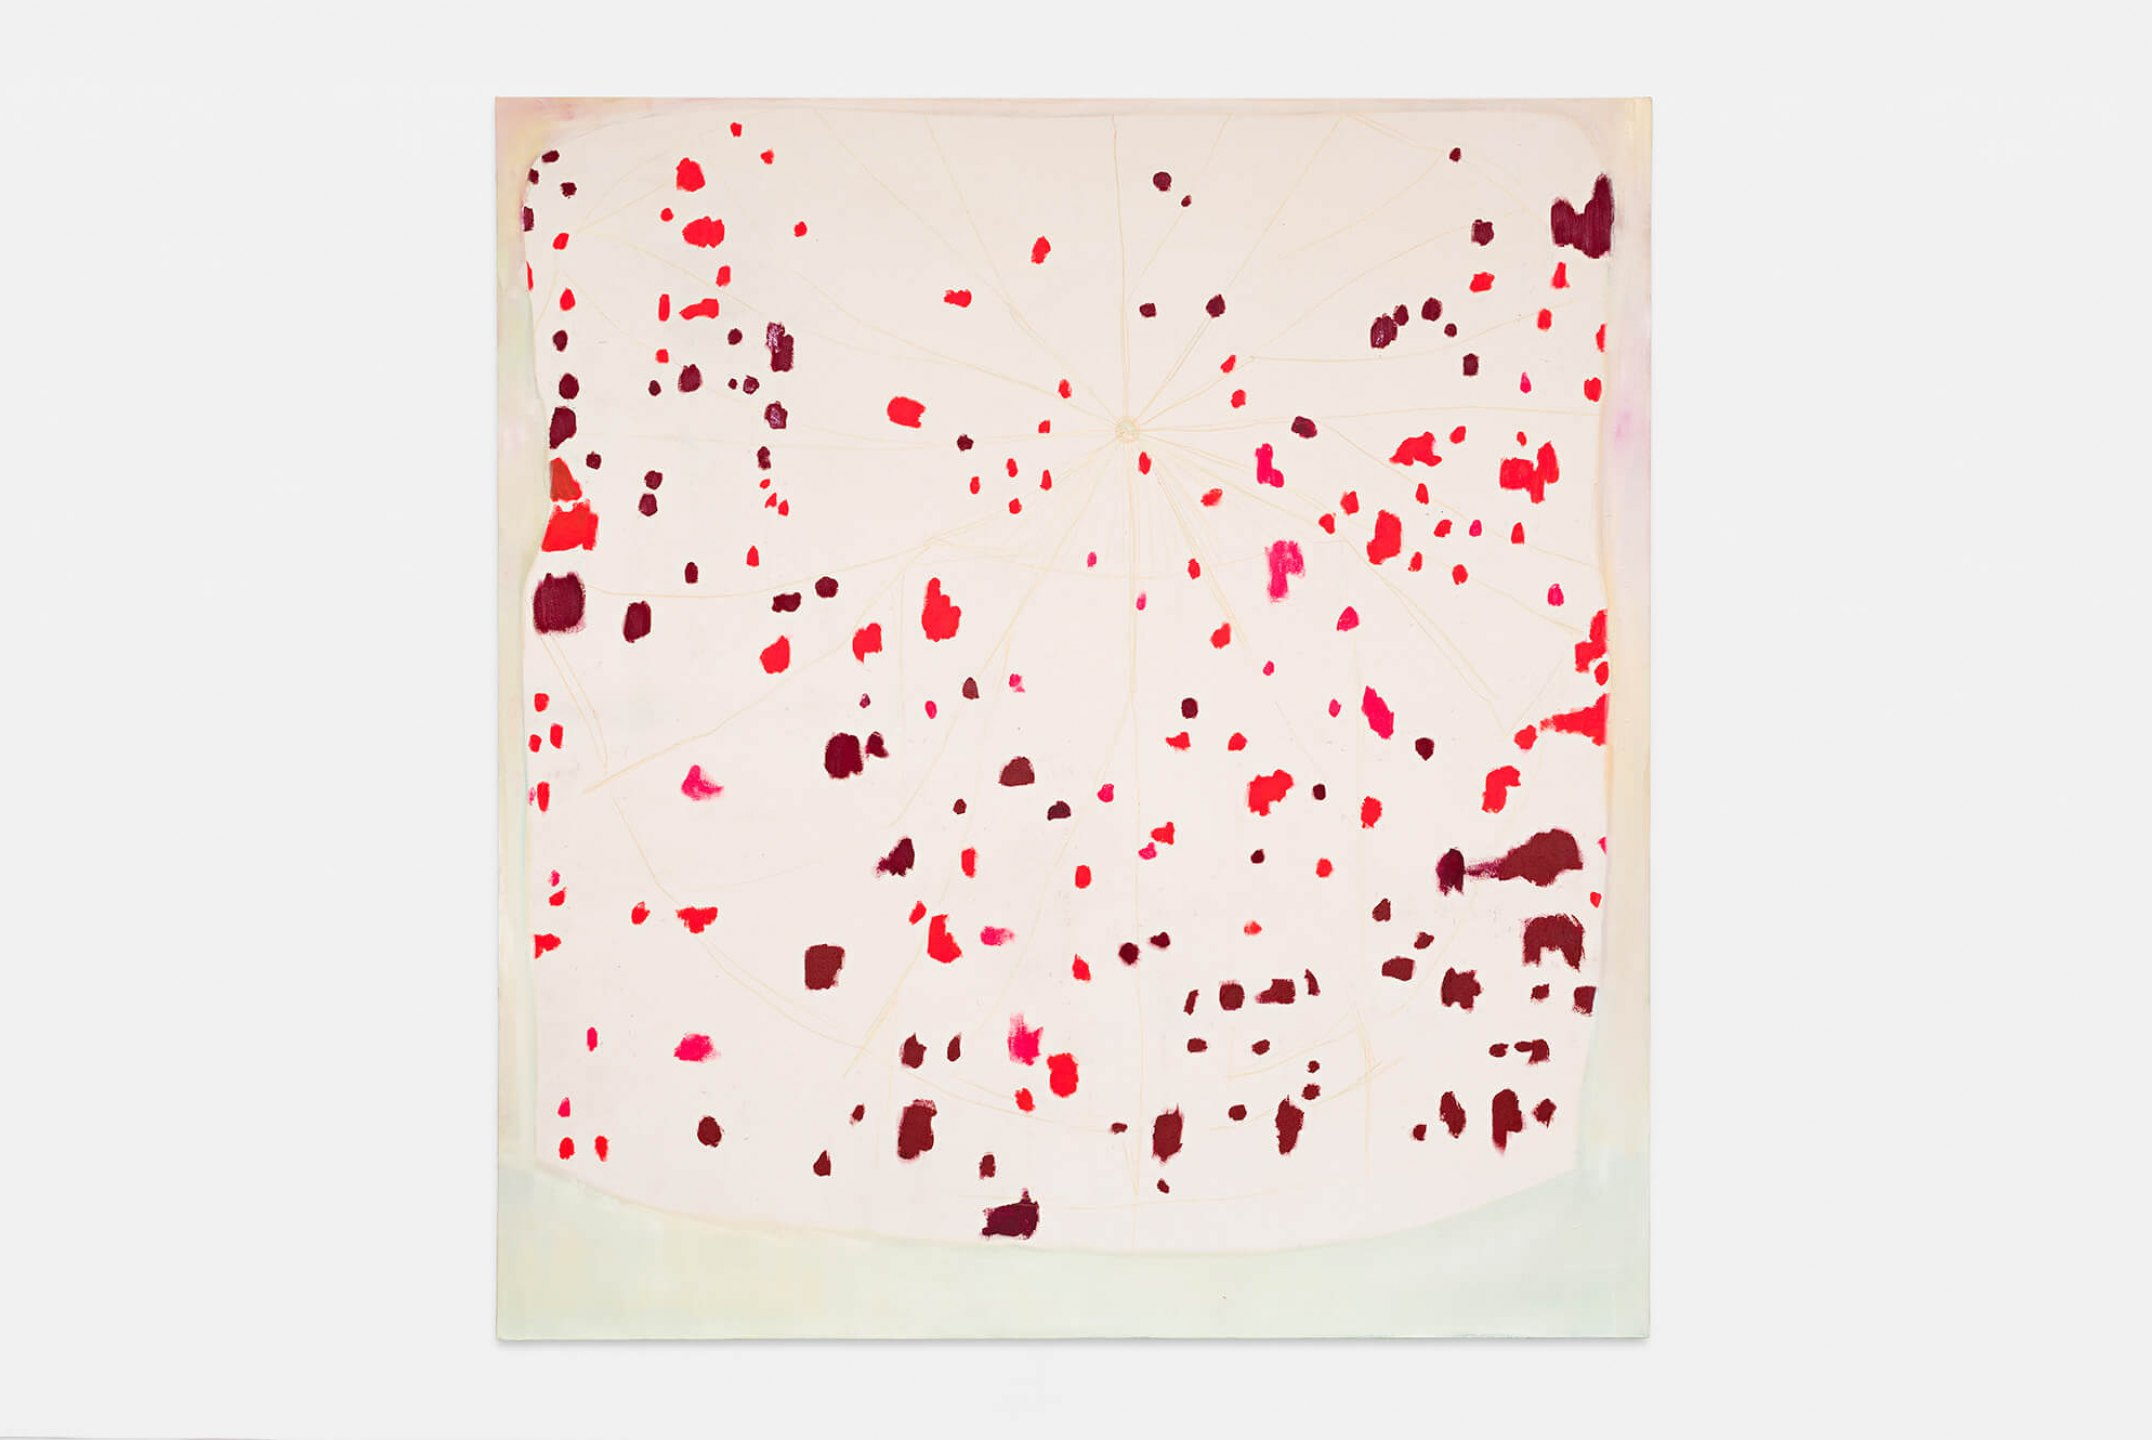 Marina Perez Simão, <em>Untitled,</em> 2014, oil, acrylic and pencil color on canvas, 175 × 190 cm  - Mendes Wood DM